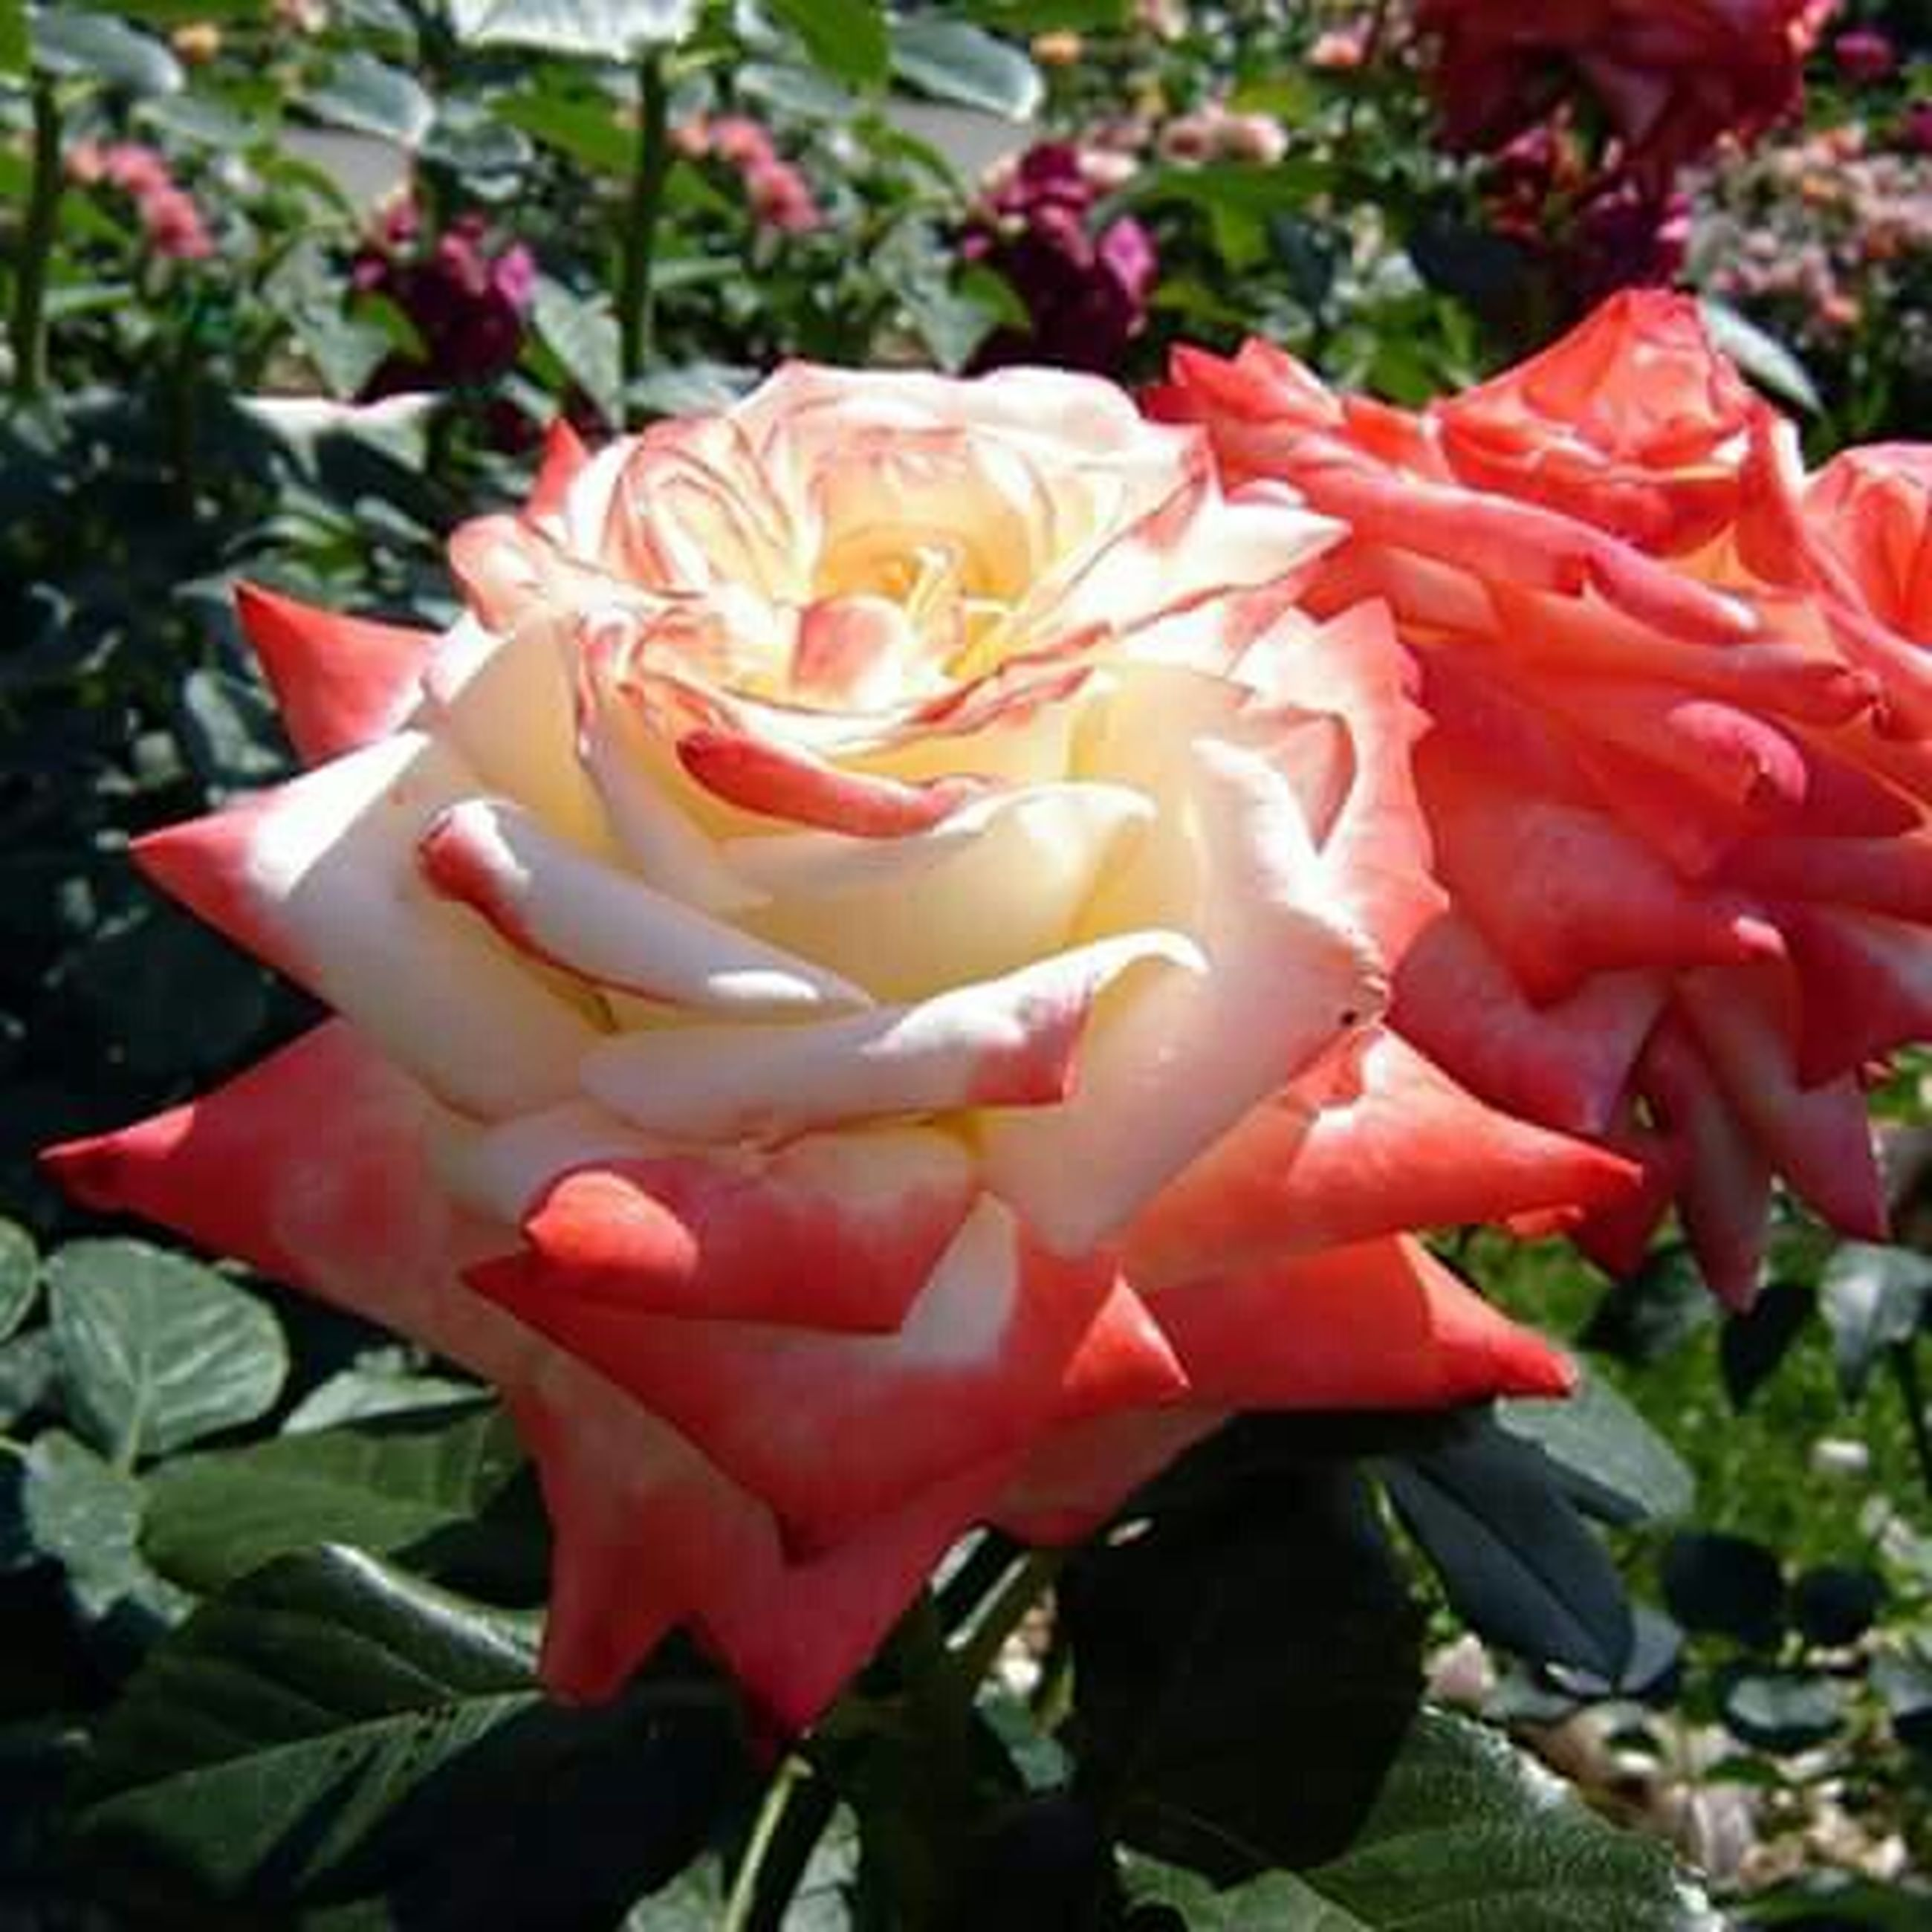 flower, petal, flower head, freshness, fragility, red, growth, rose - flower, beauty in nature, blooming, close-up, nature, plant, leaf, focus on foreground, rose, in bloom, single flower, park - man made space, day